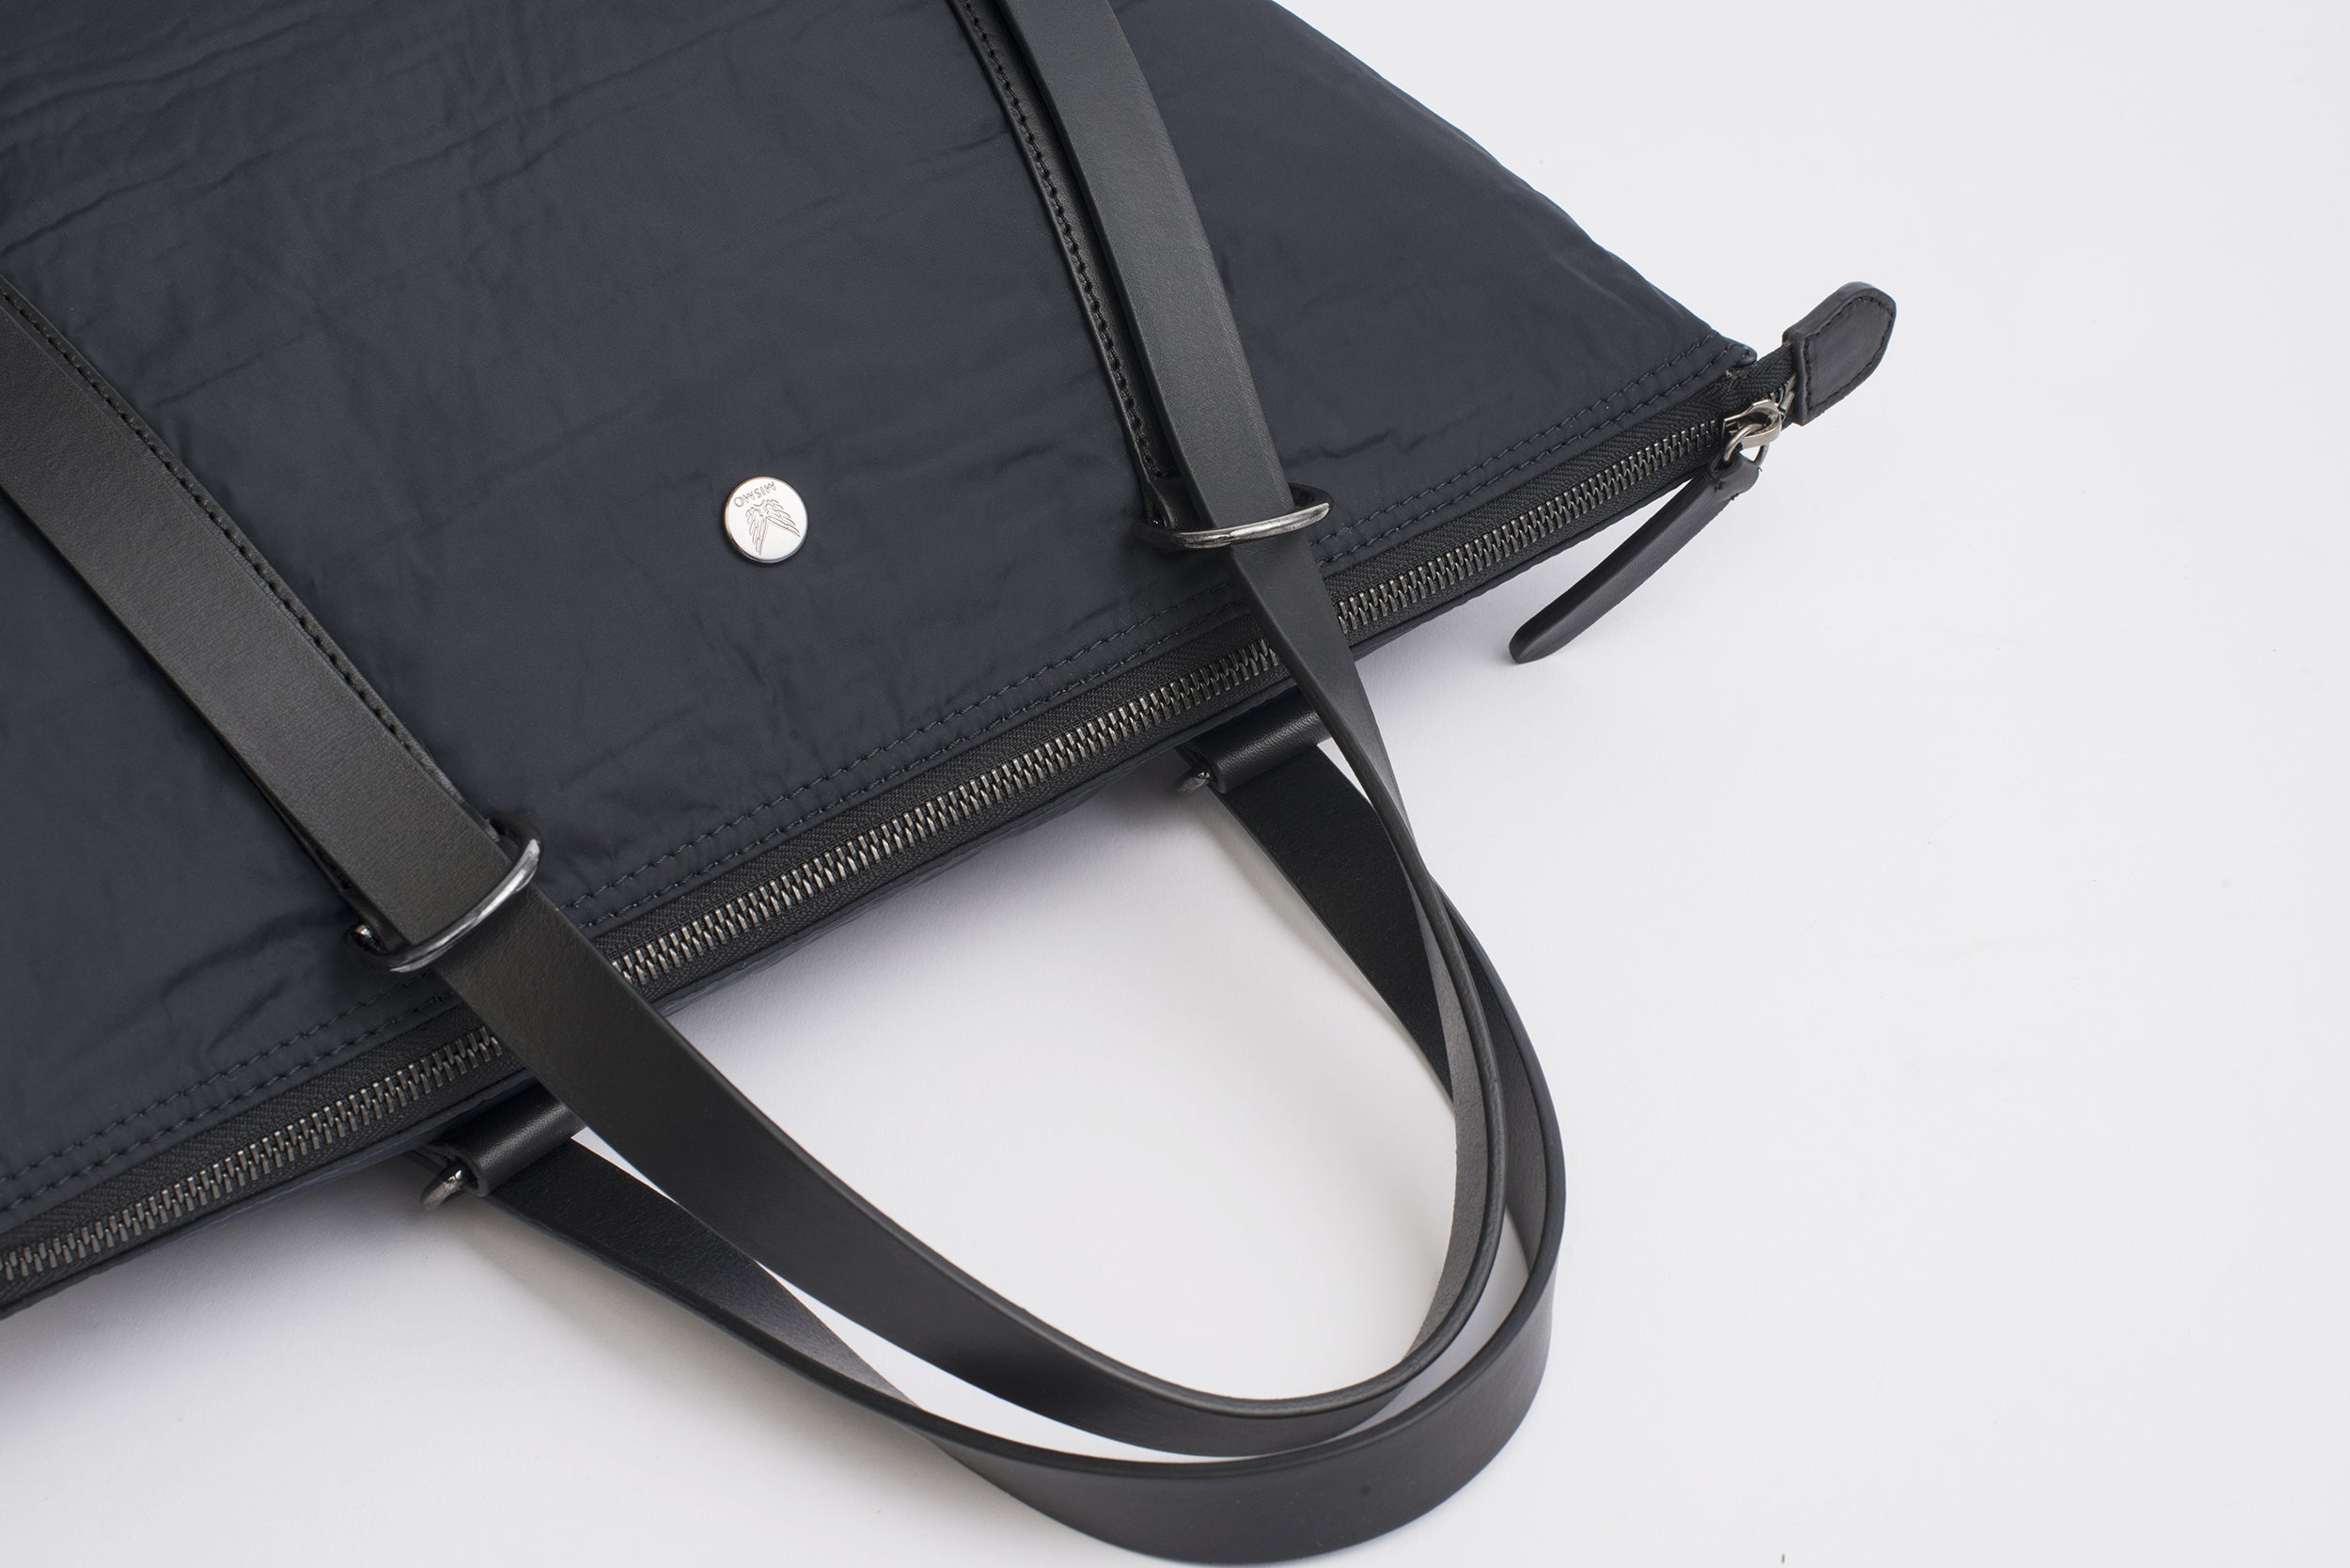 M/S Daypack - Moonlight Blue/Black